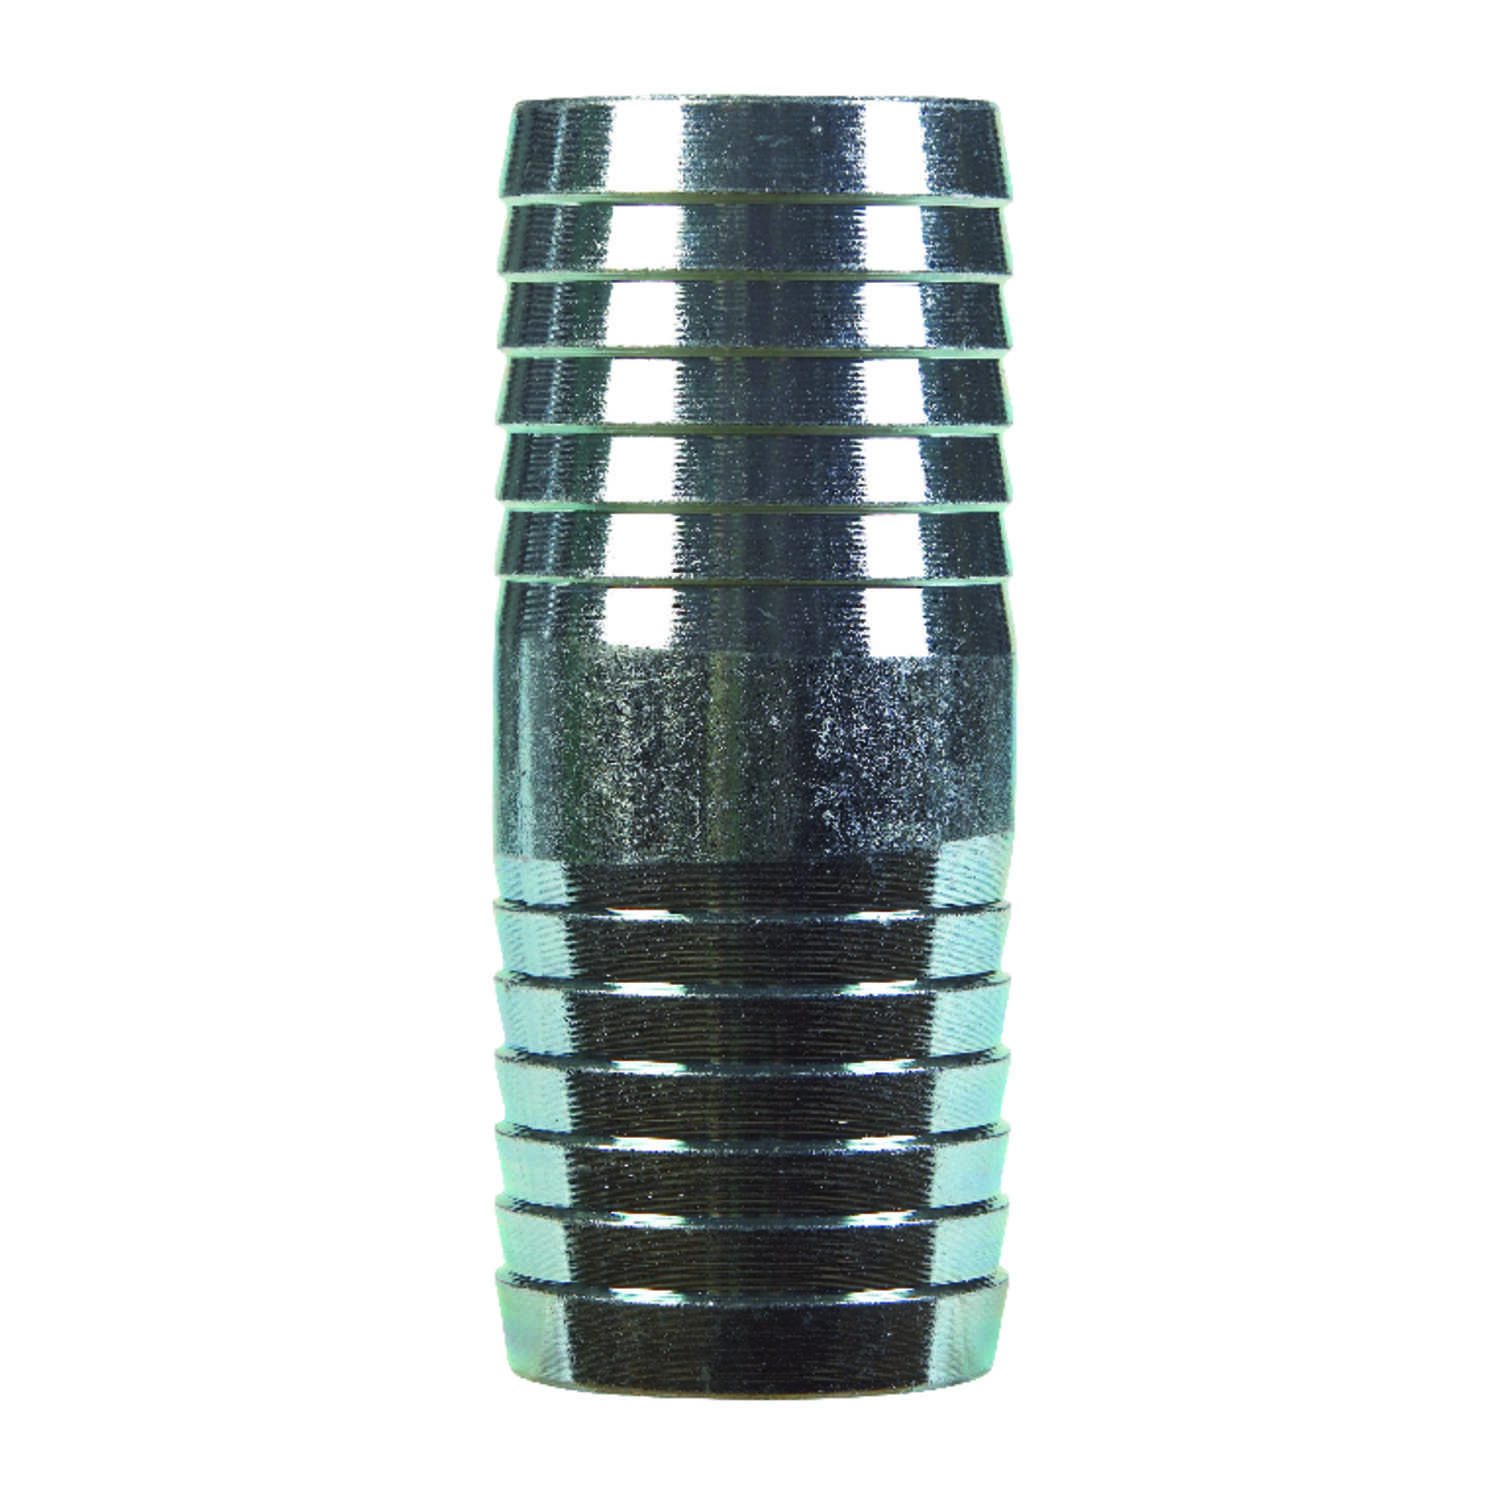 B & K  1-1/2 in. Barb   x 1-1/2 in. Dia. Barb  Galvanized Steel  Coupling